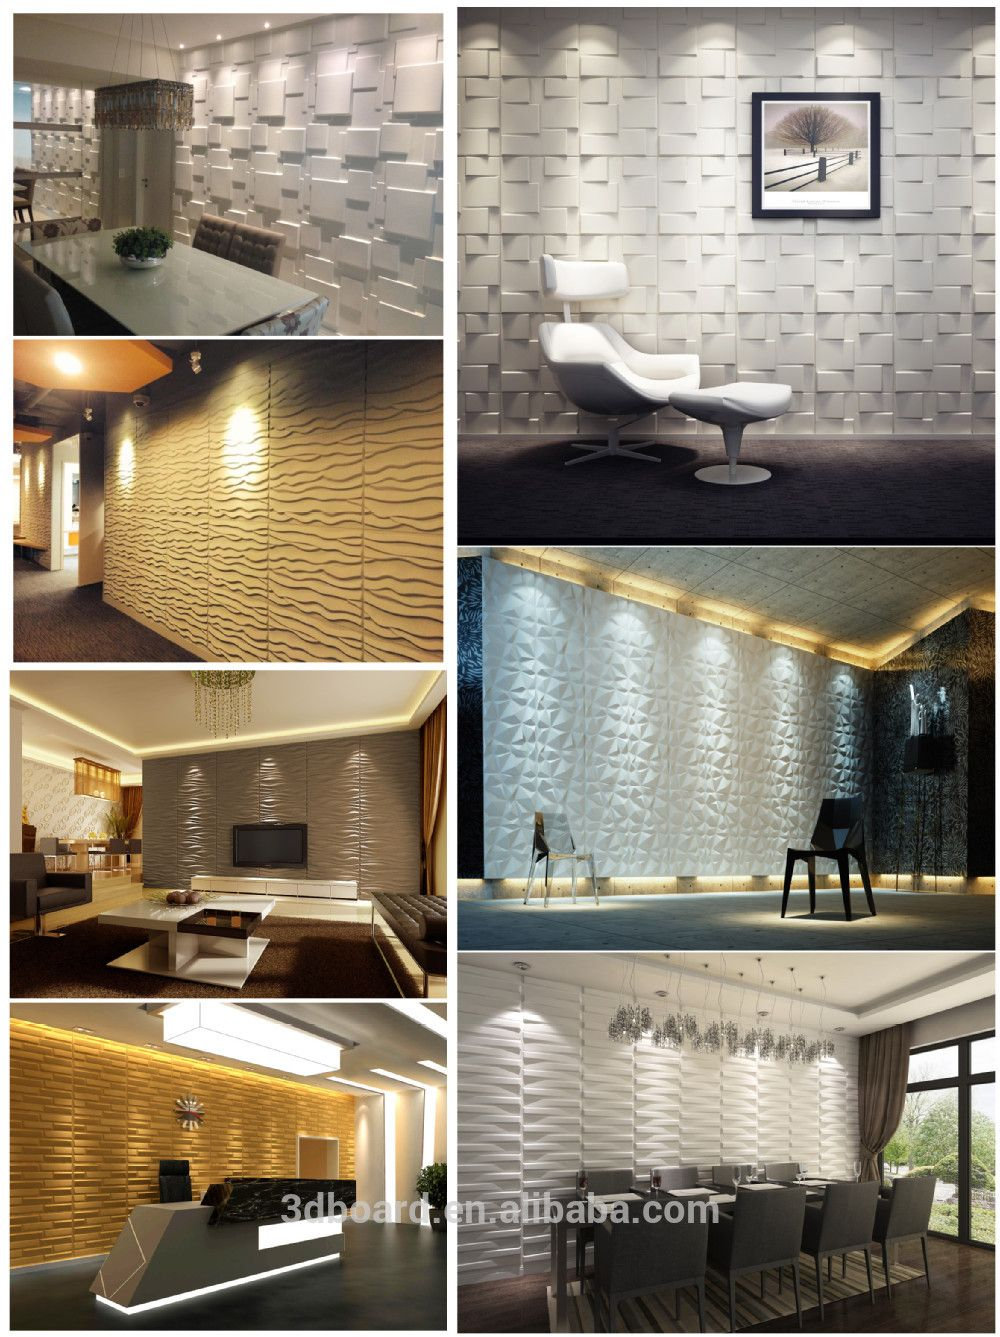 Tile N Decor Modern Wall Art Decor Interior 3D Effect Wall Panels For Home